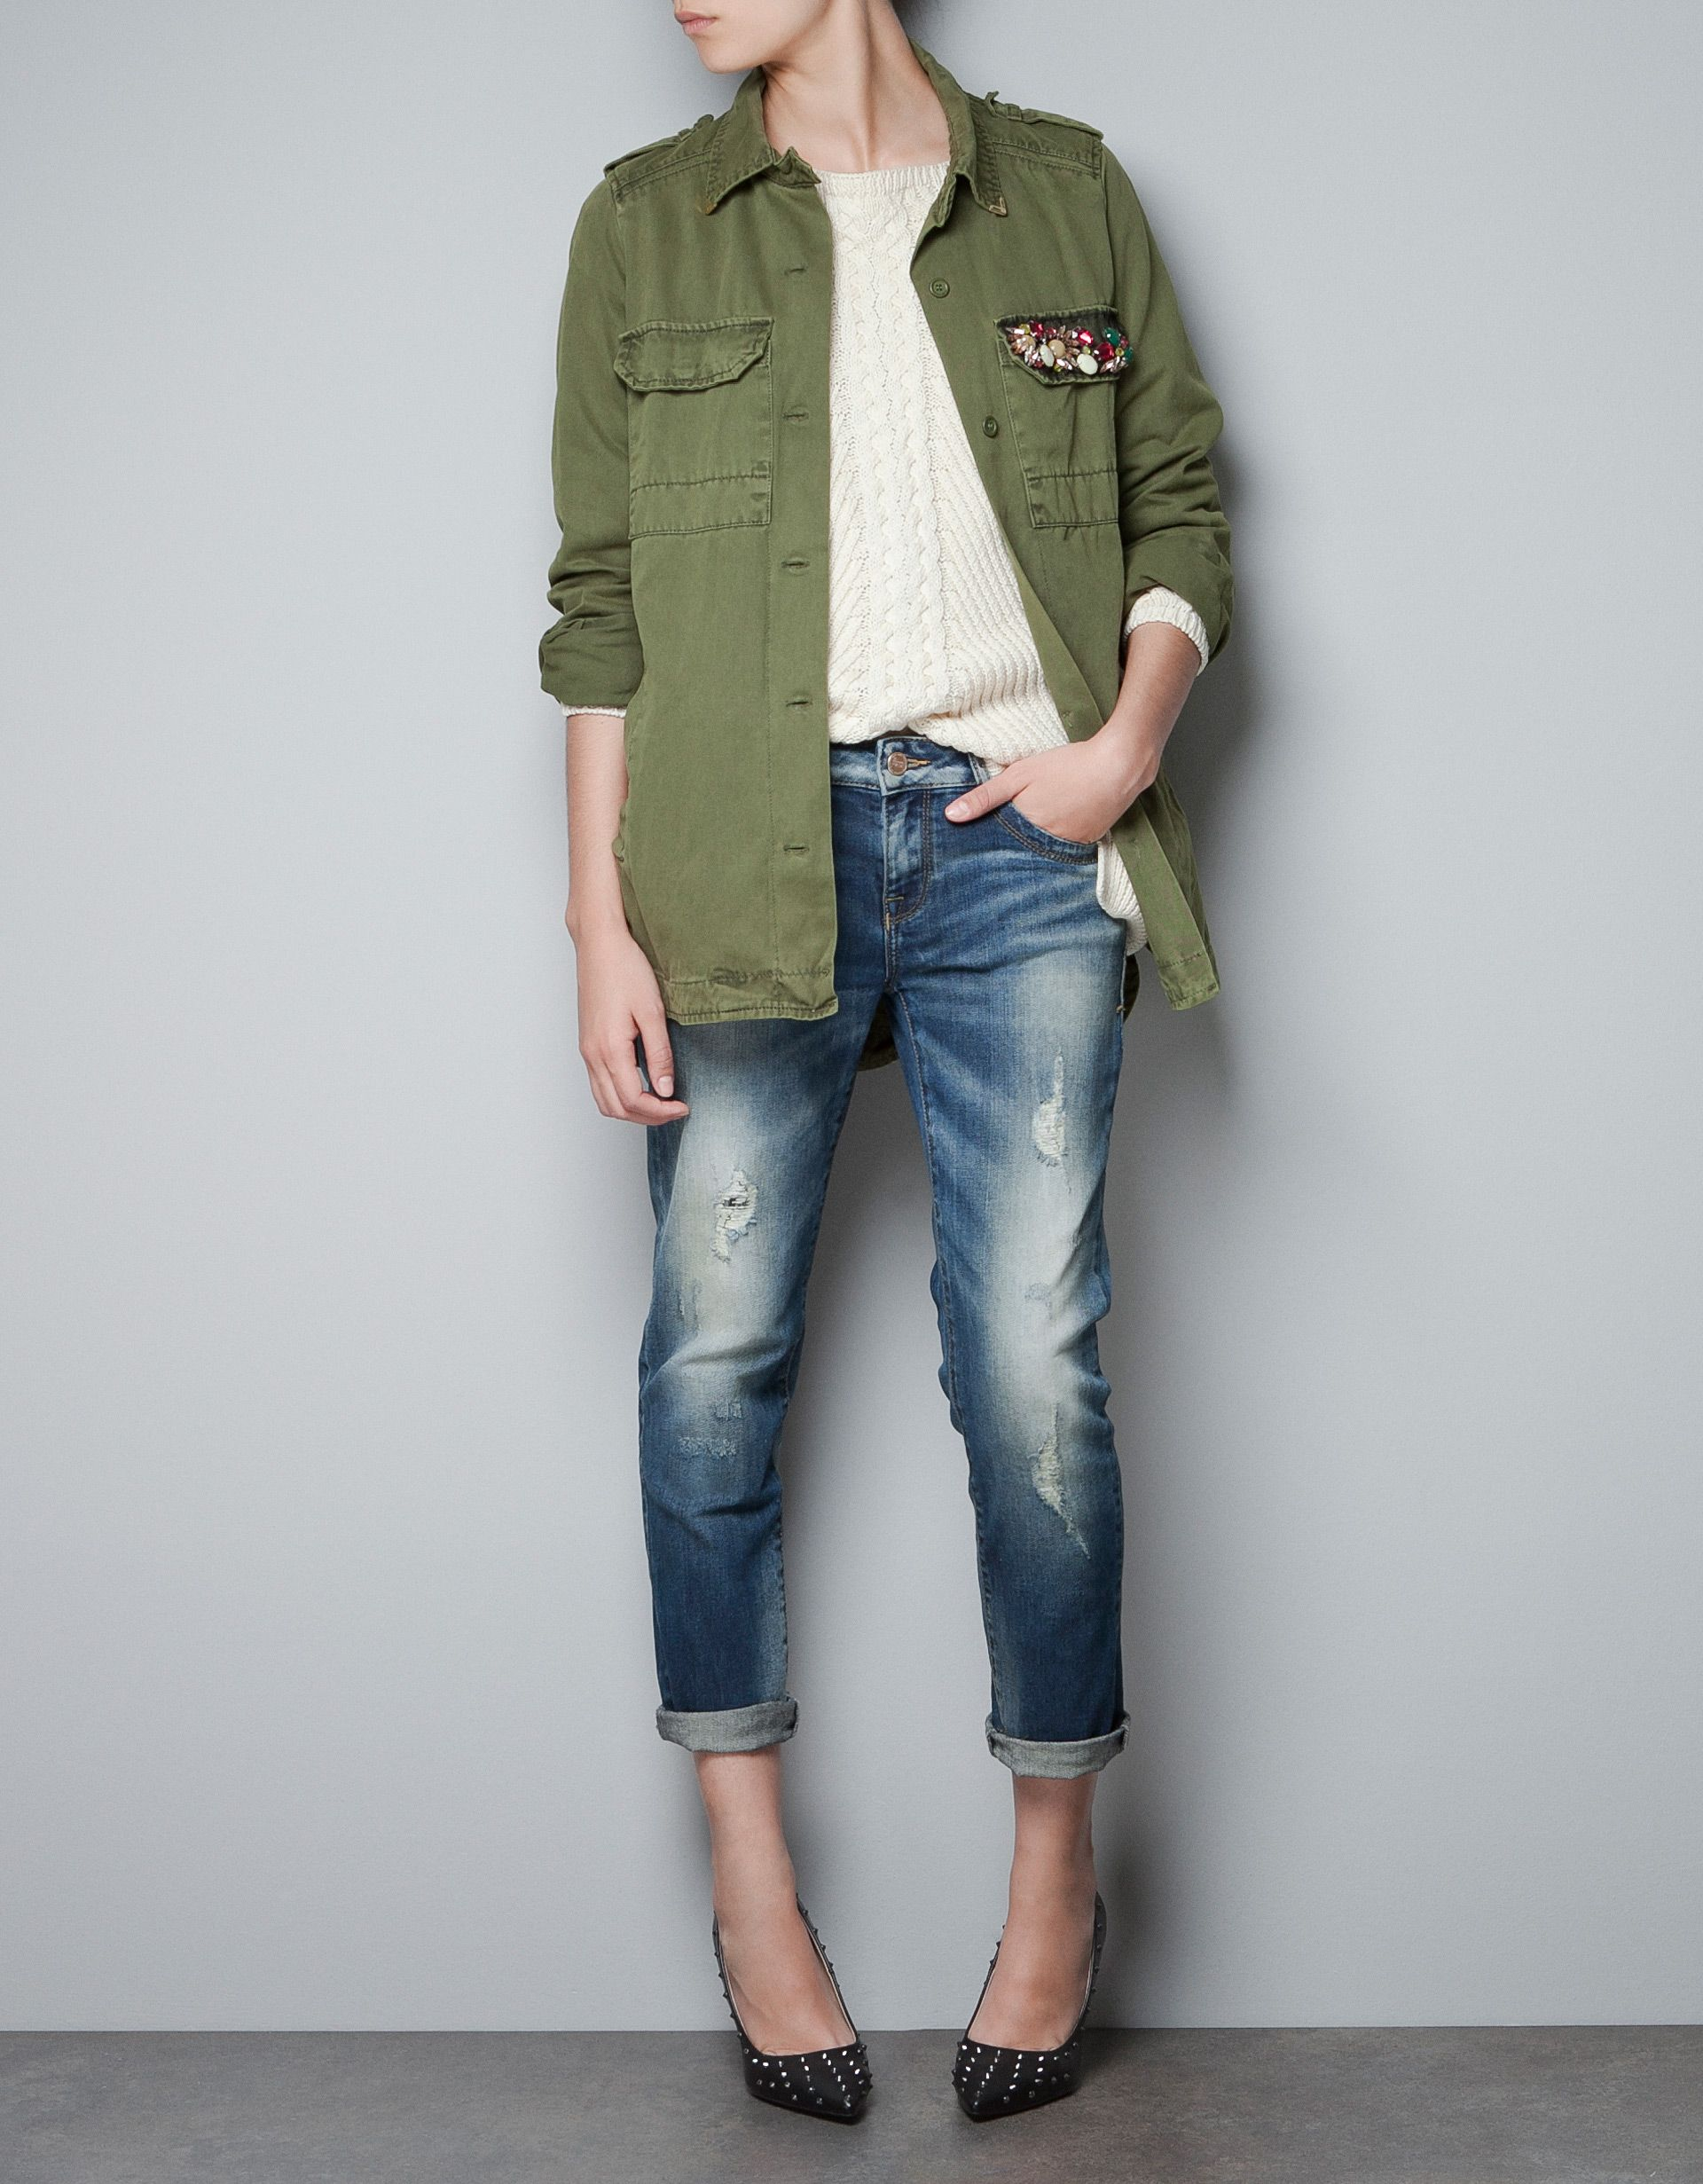 81b40160 Zara military jacket/overshirt with appliqué | My Style | Military ...